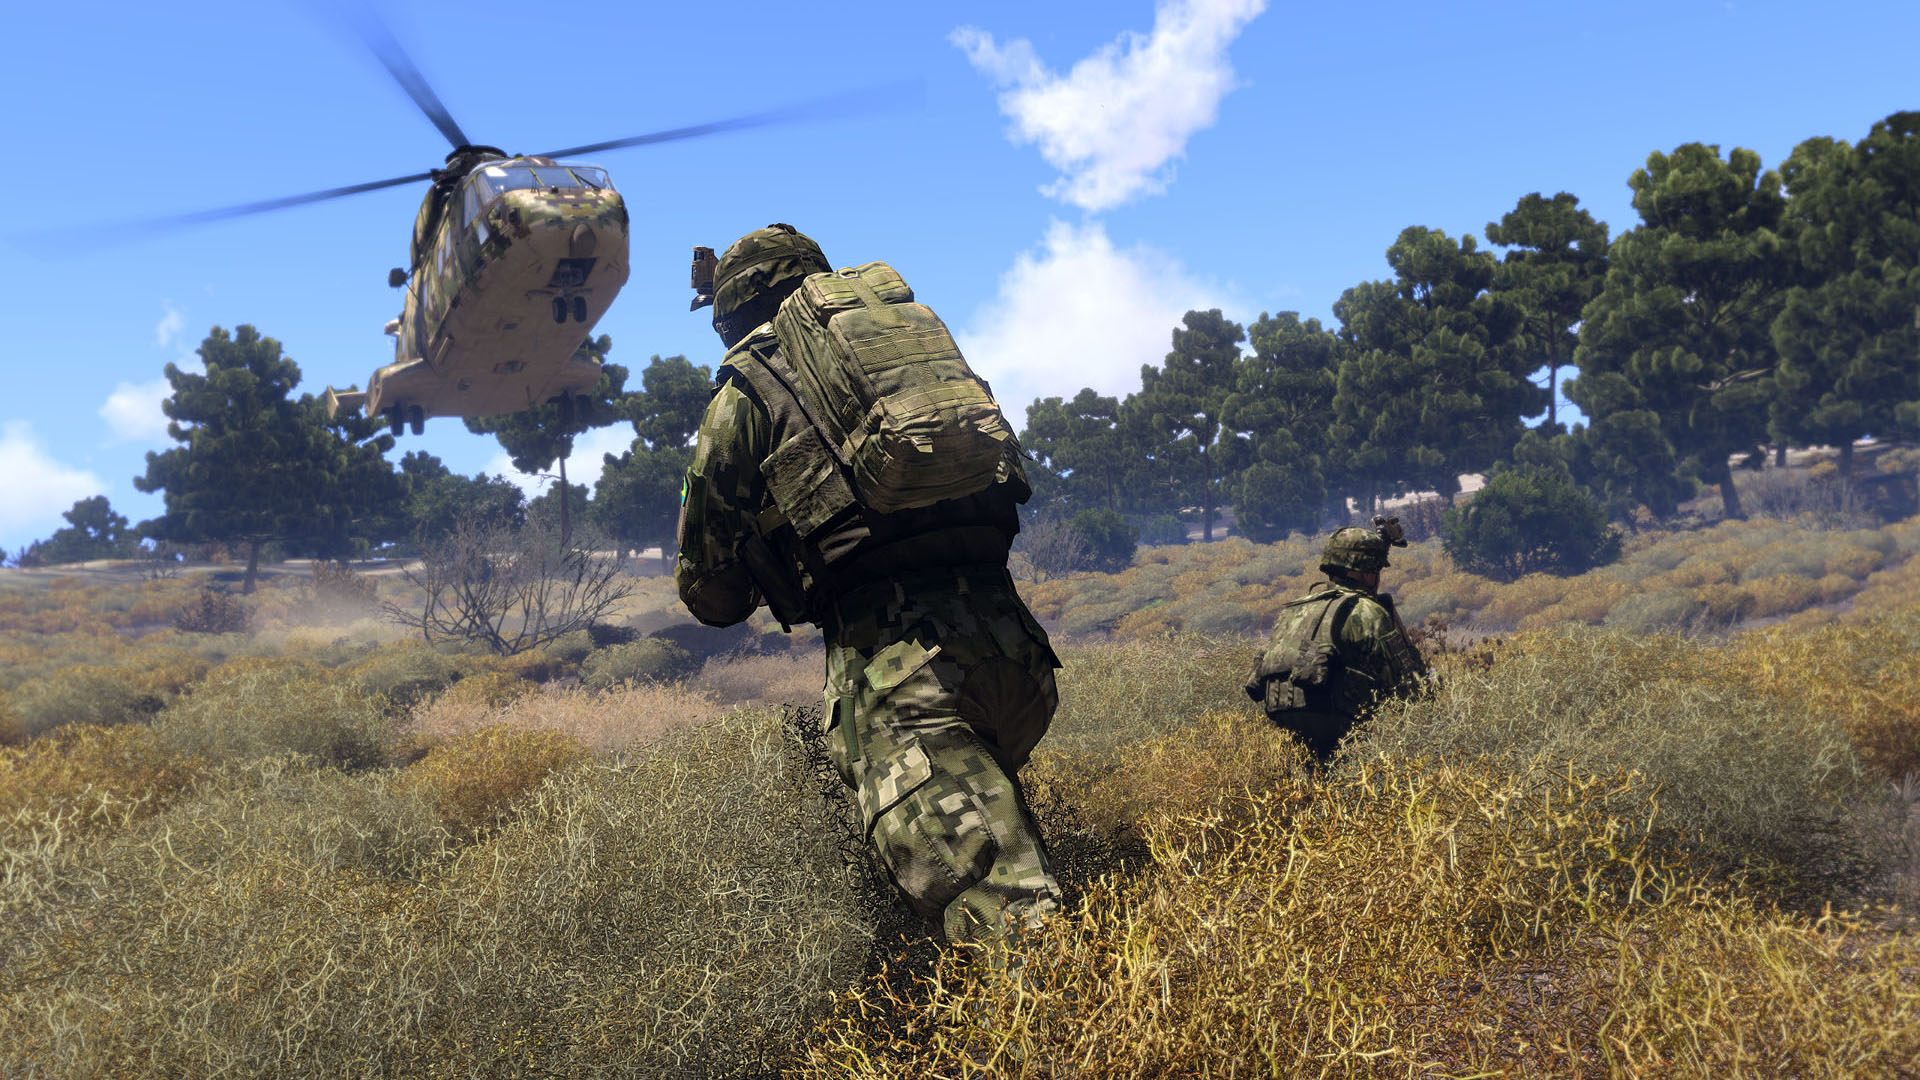 Find the best gaming PC for Arma 3